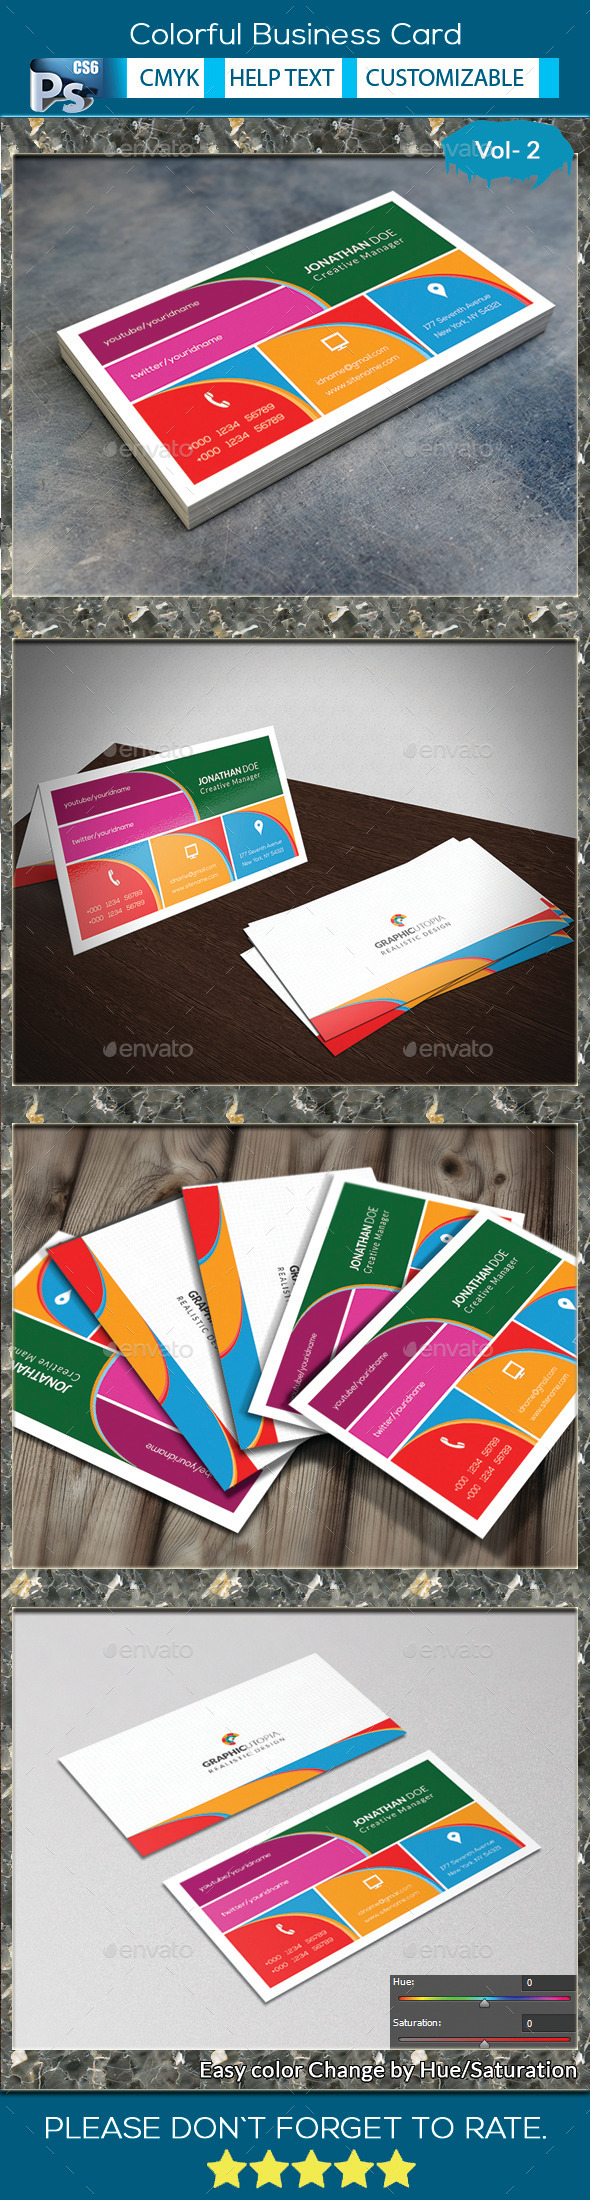 Colorful Business Card V.2